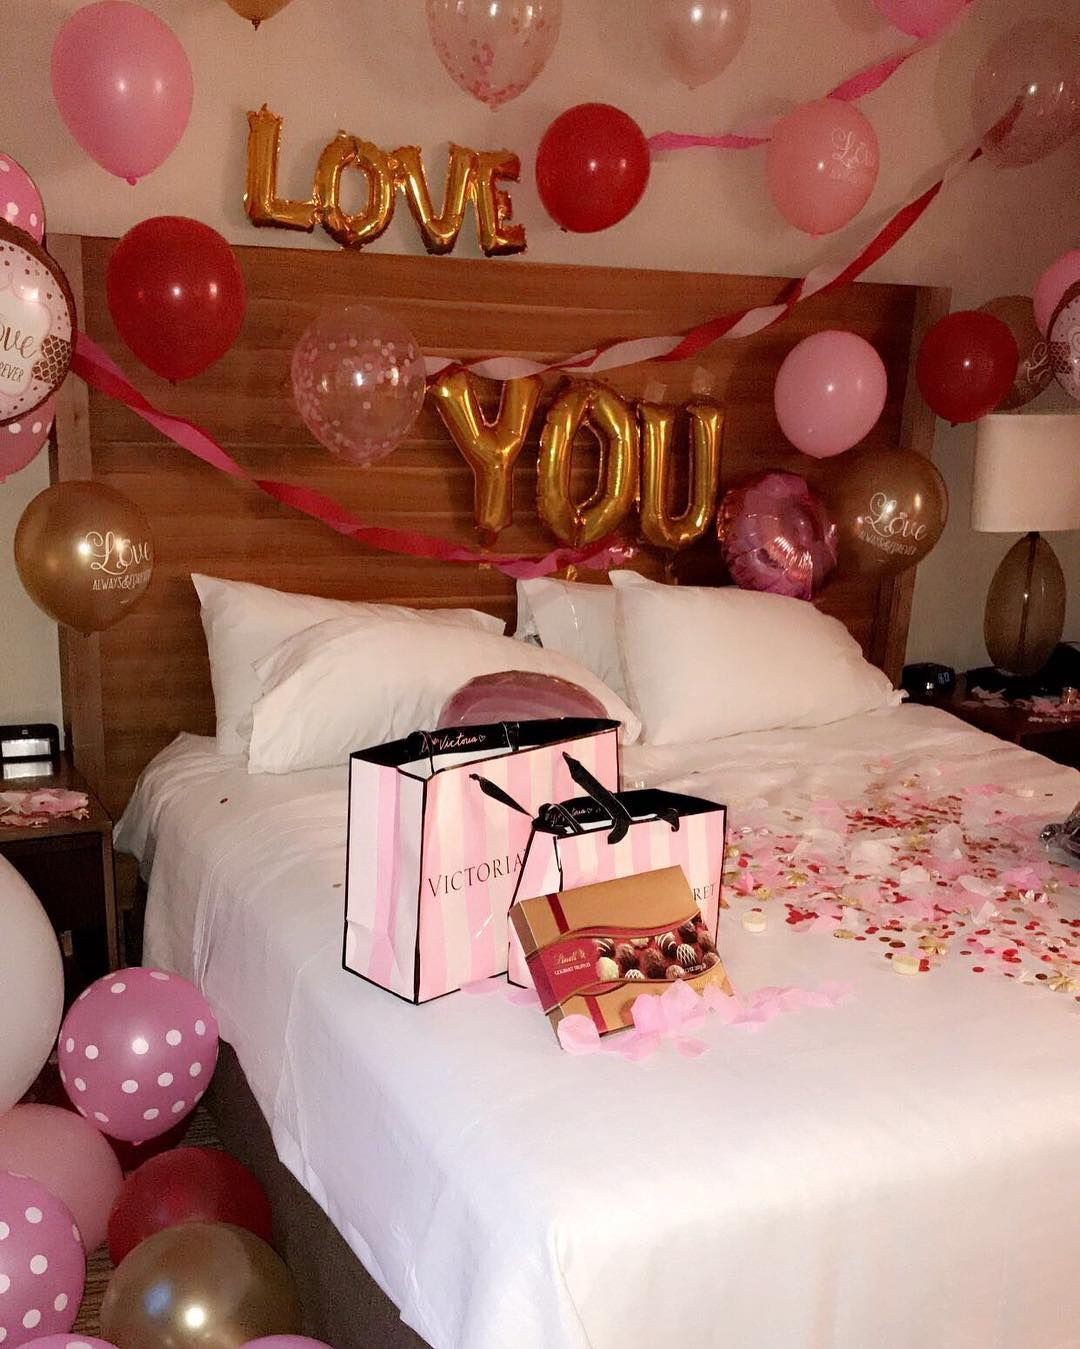 Pin By Jayah Washington On Being In Love Romantic Hotel Rooms